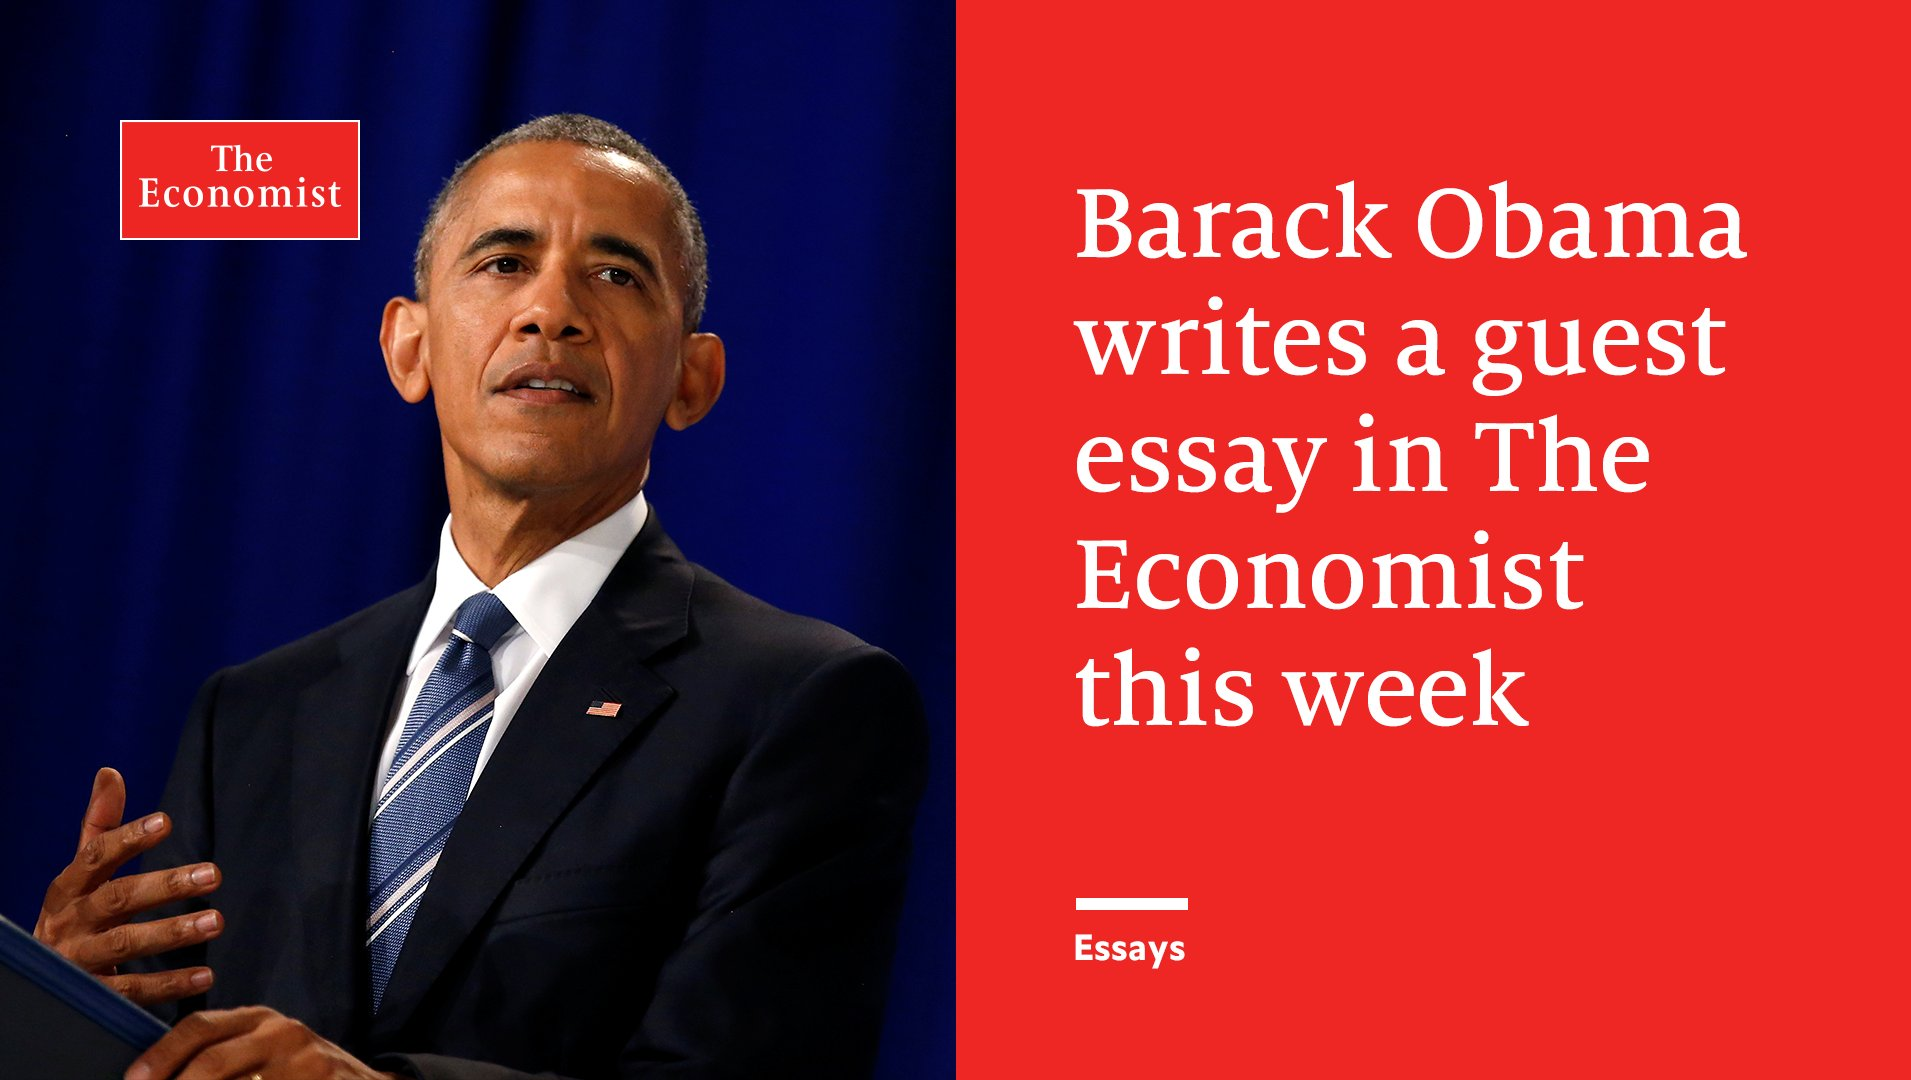 essay on why obama should not be reelected  · update: their is no need to be rude and why should i write an essay if i honestly would not choose obama if she wouldn't have forced me to write about.